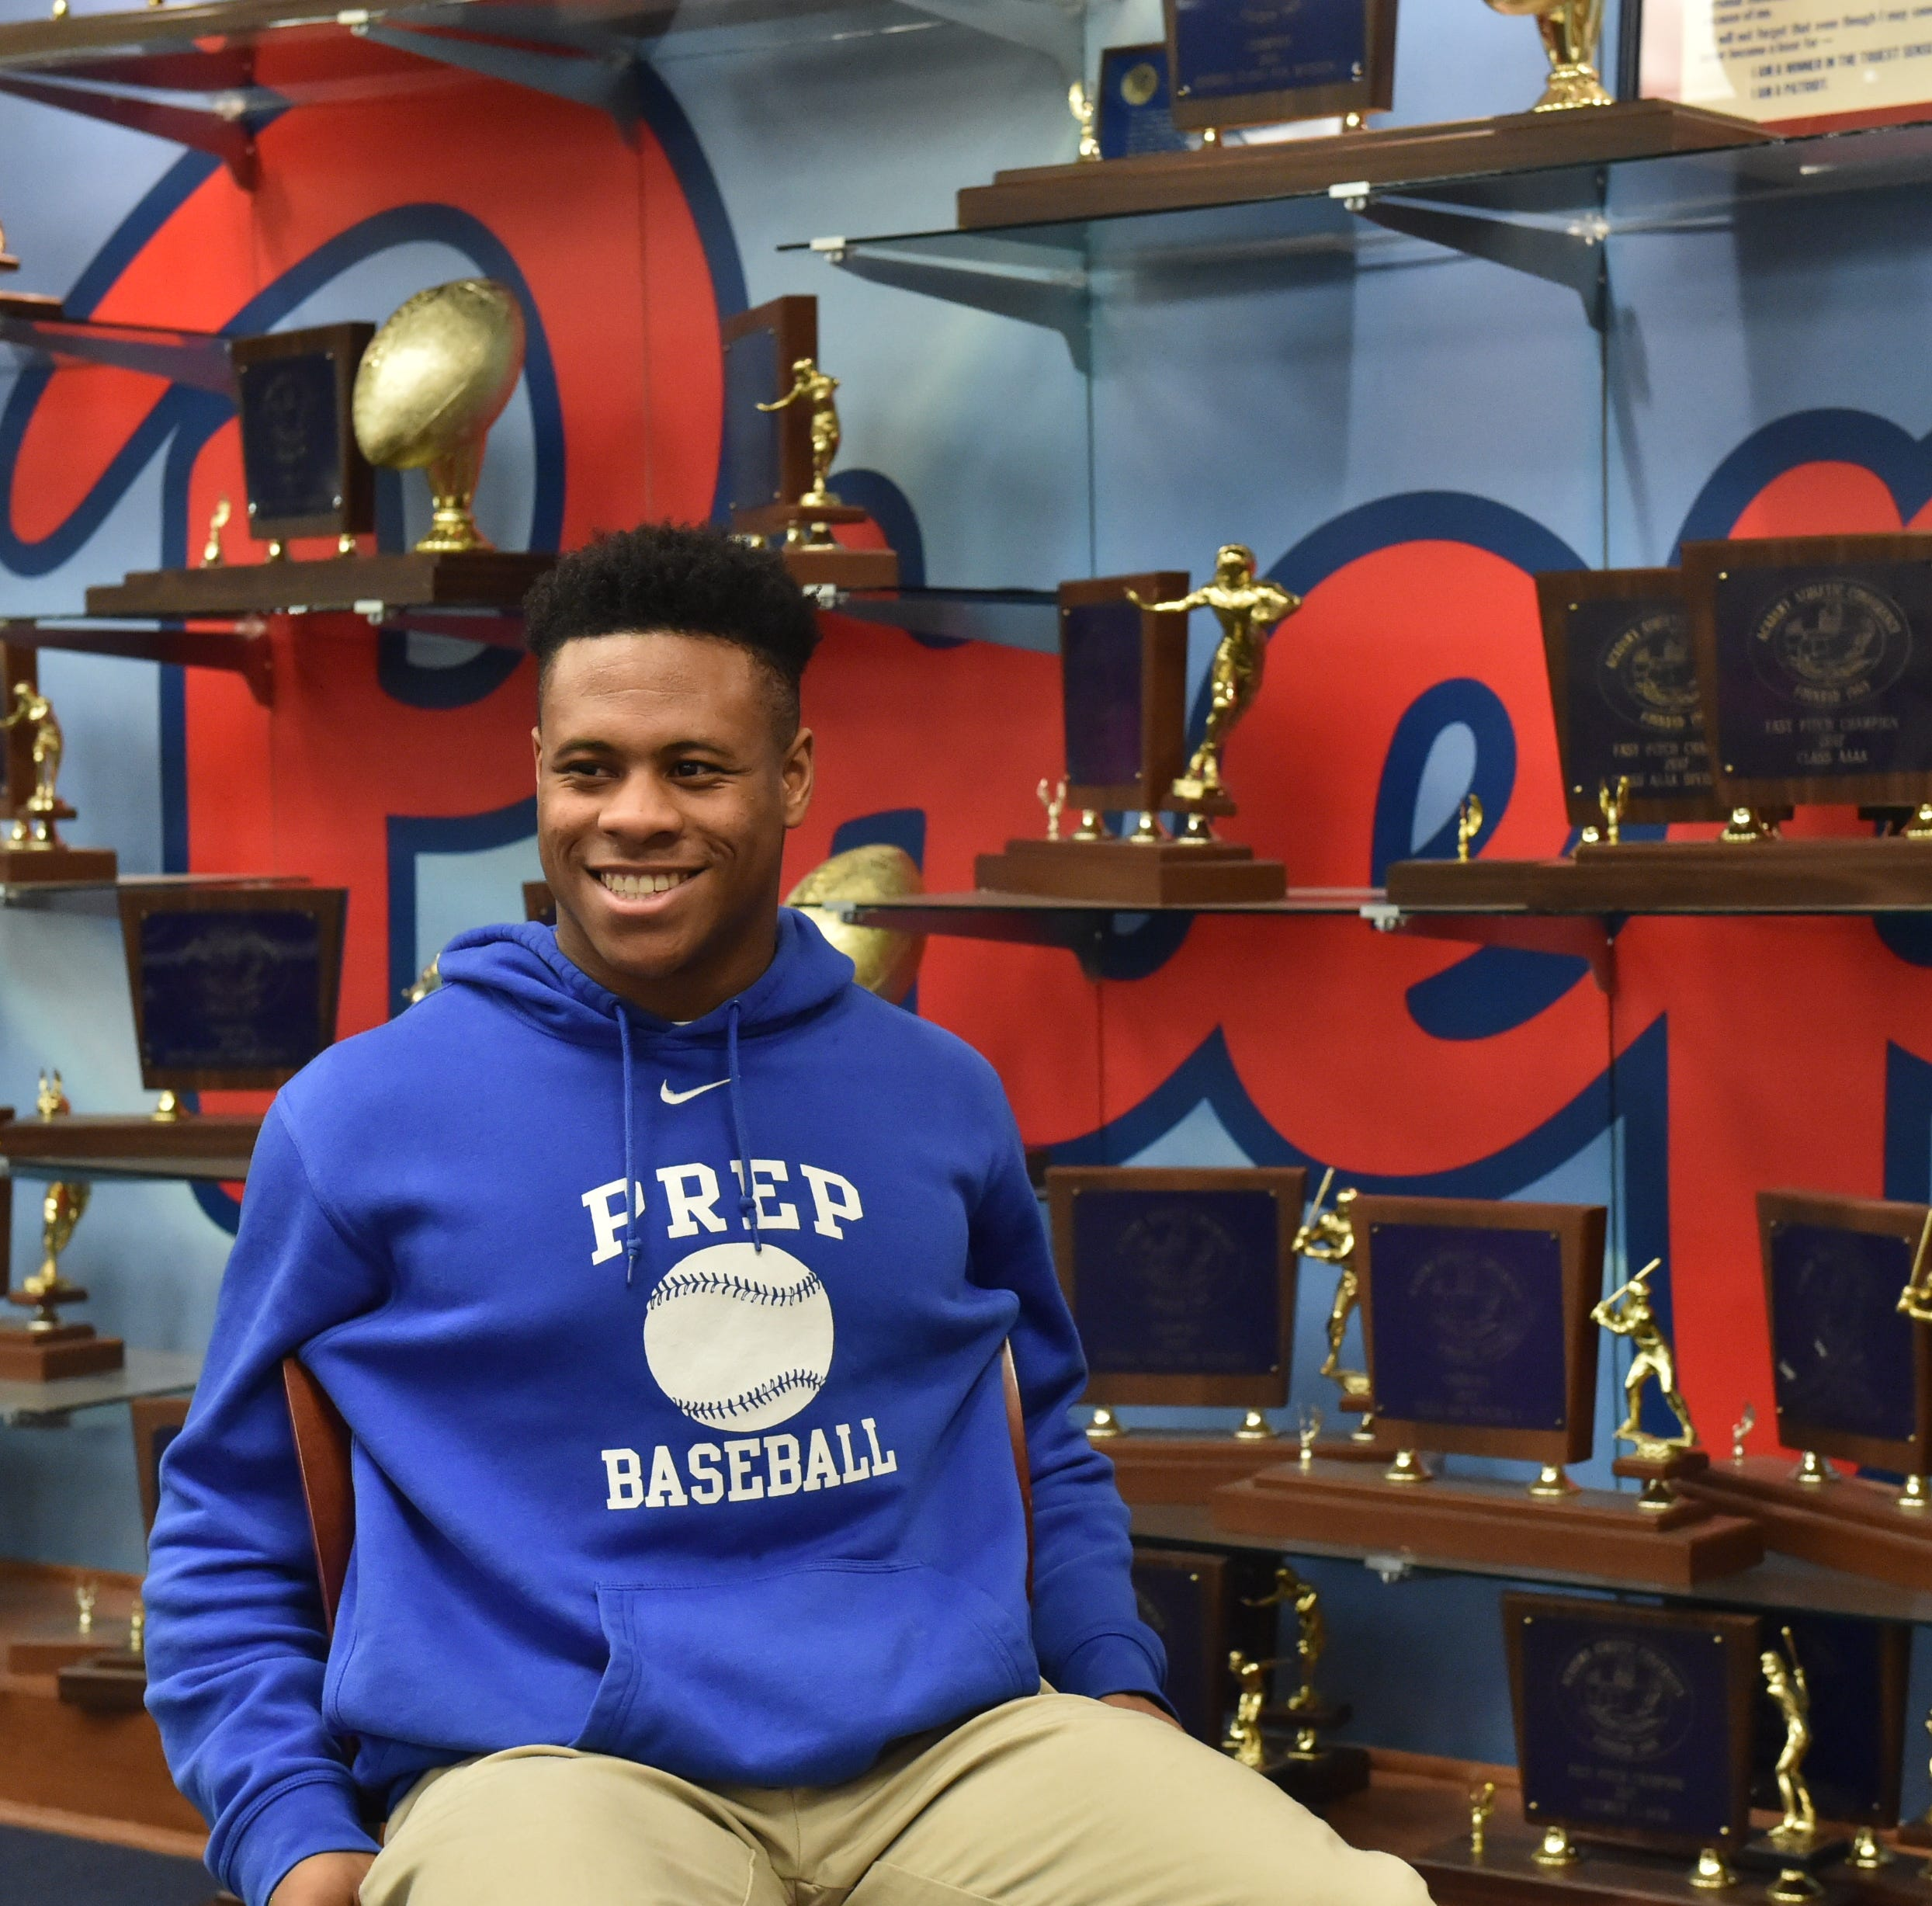 A $2 million decision: Will Jerrion Ealy choose MLB or college ball? It's all about 'joy'